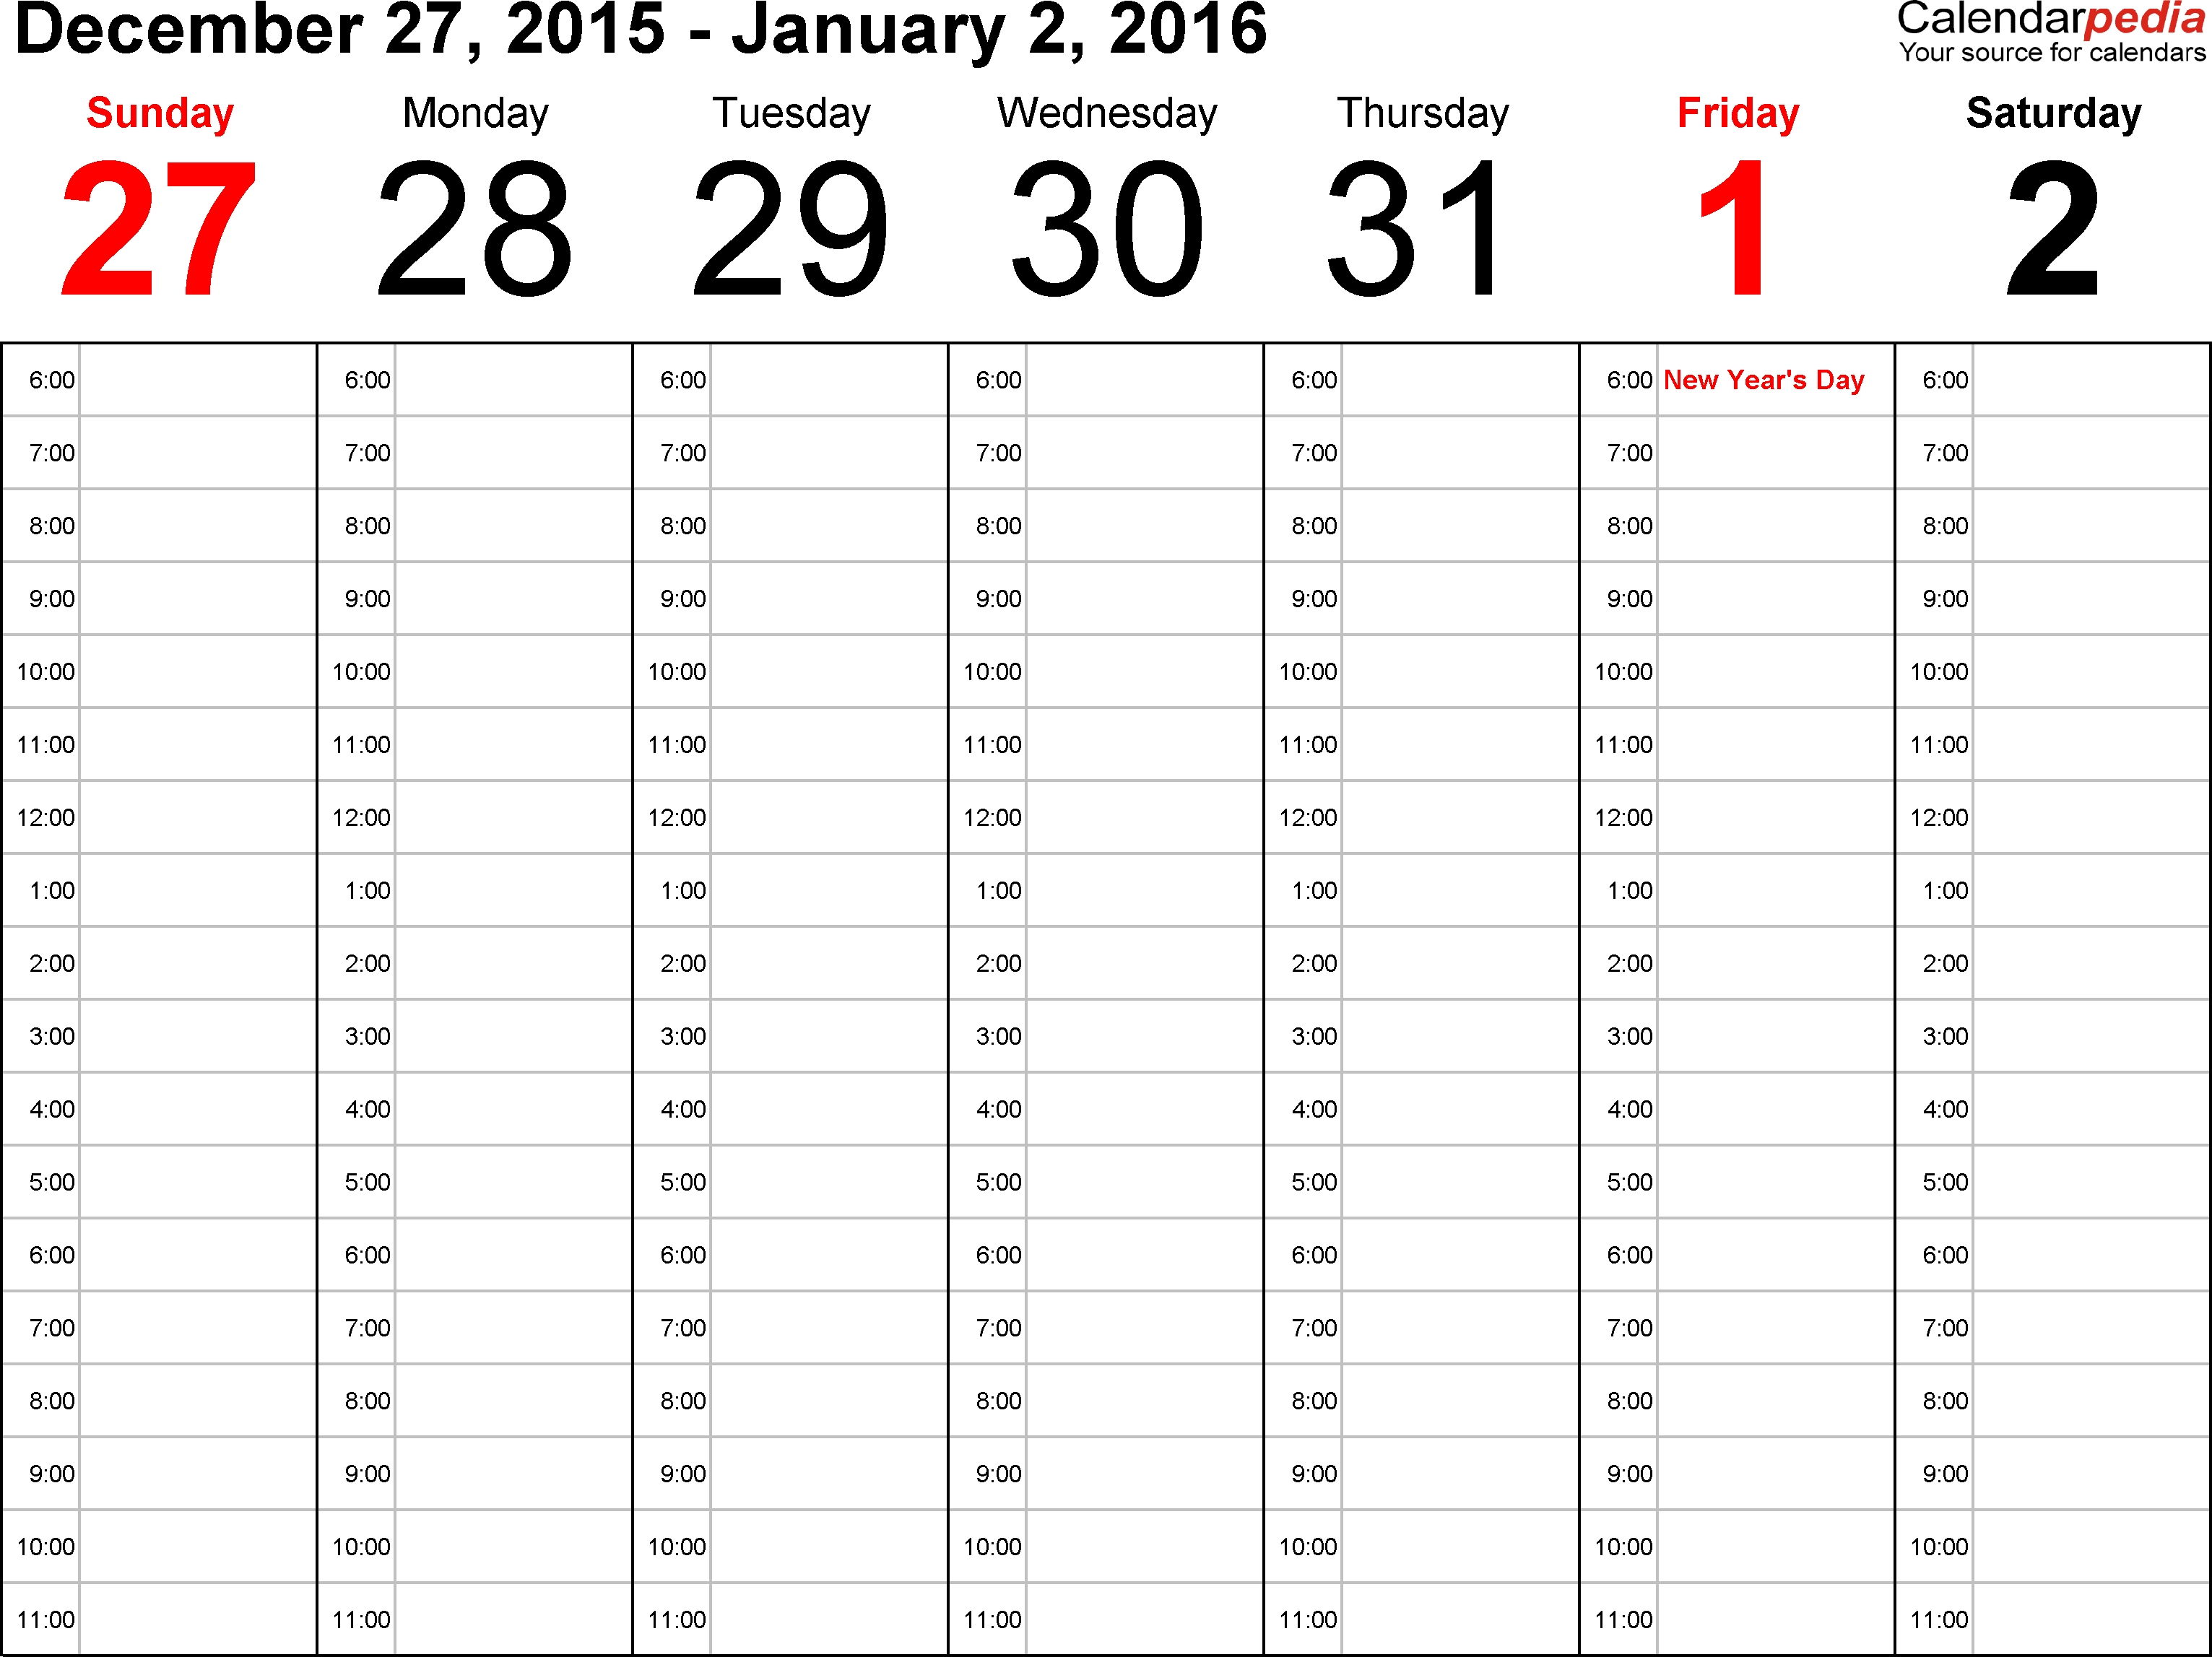 Weekly Calendars 2016 For Pdf - 12 Free Printable Templates